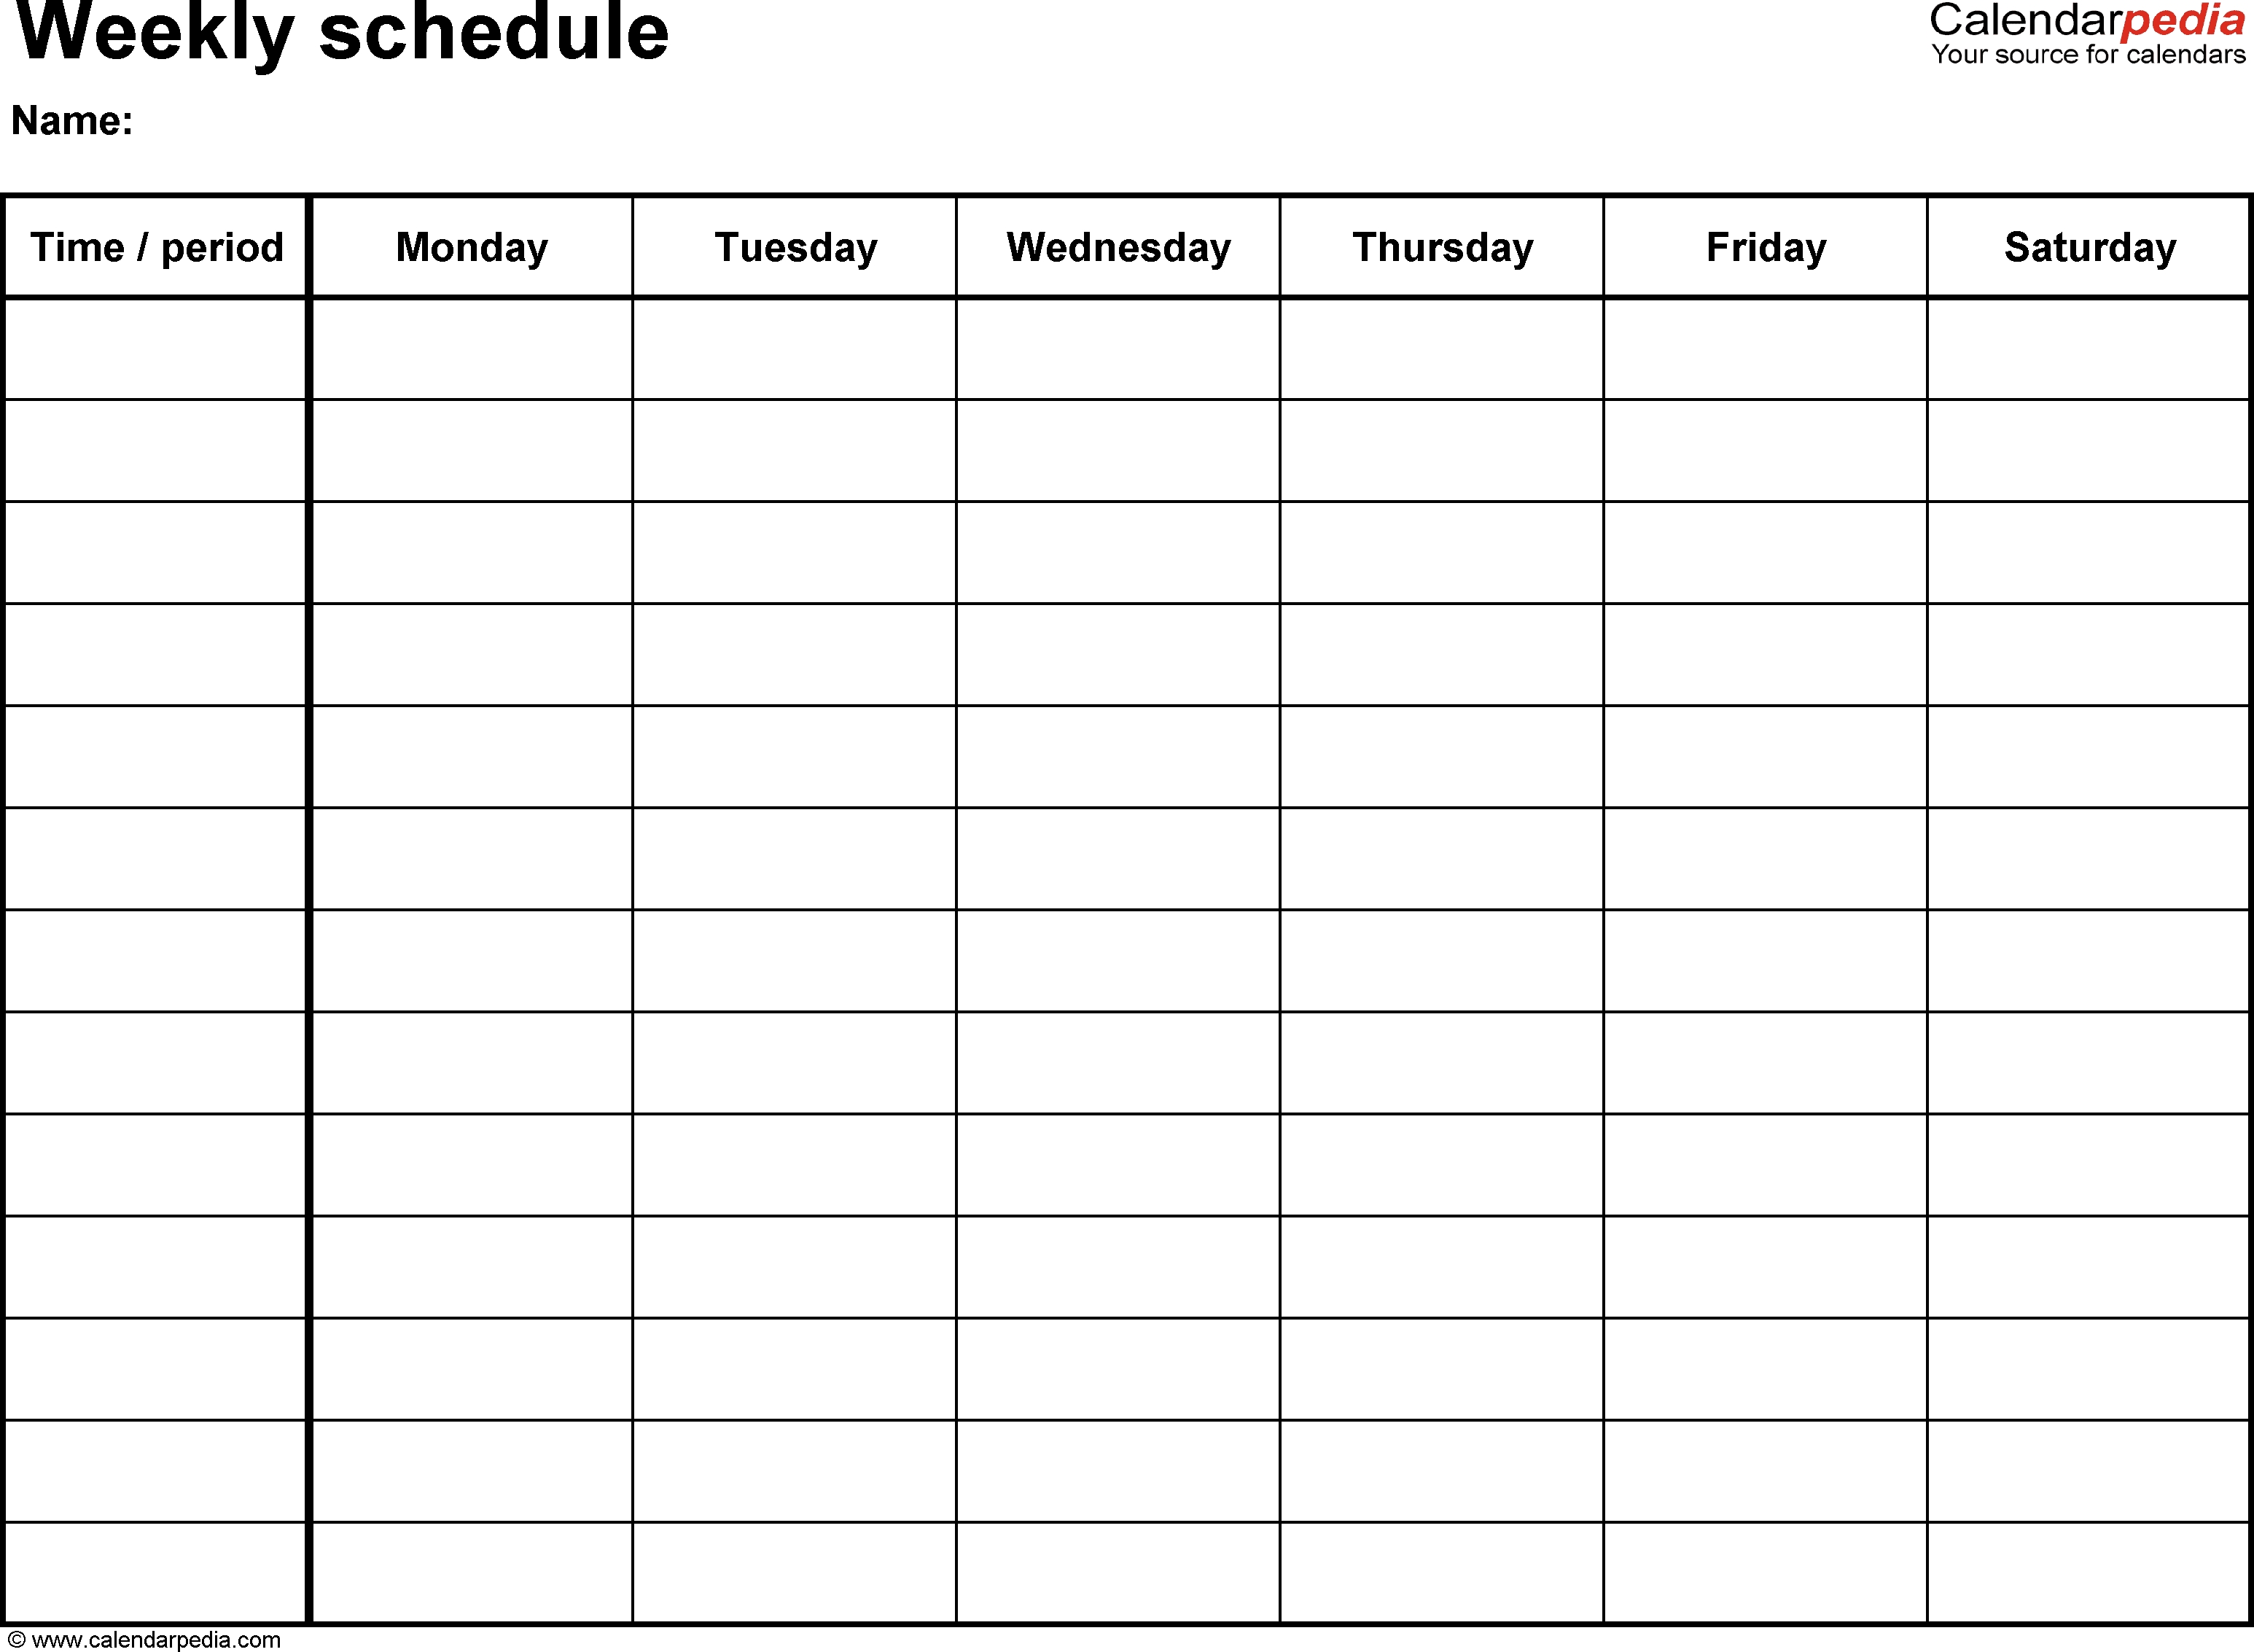 Free Weekly Schedule Templates For Word - 18 Templates regarding Printable Monday Through Friday Calendar Template